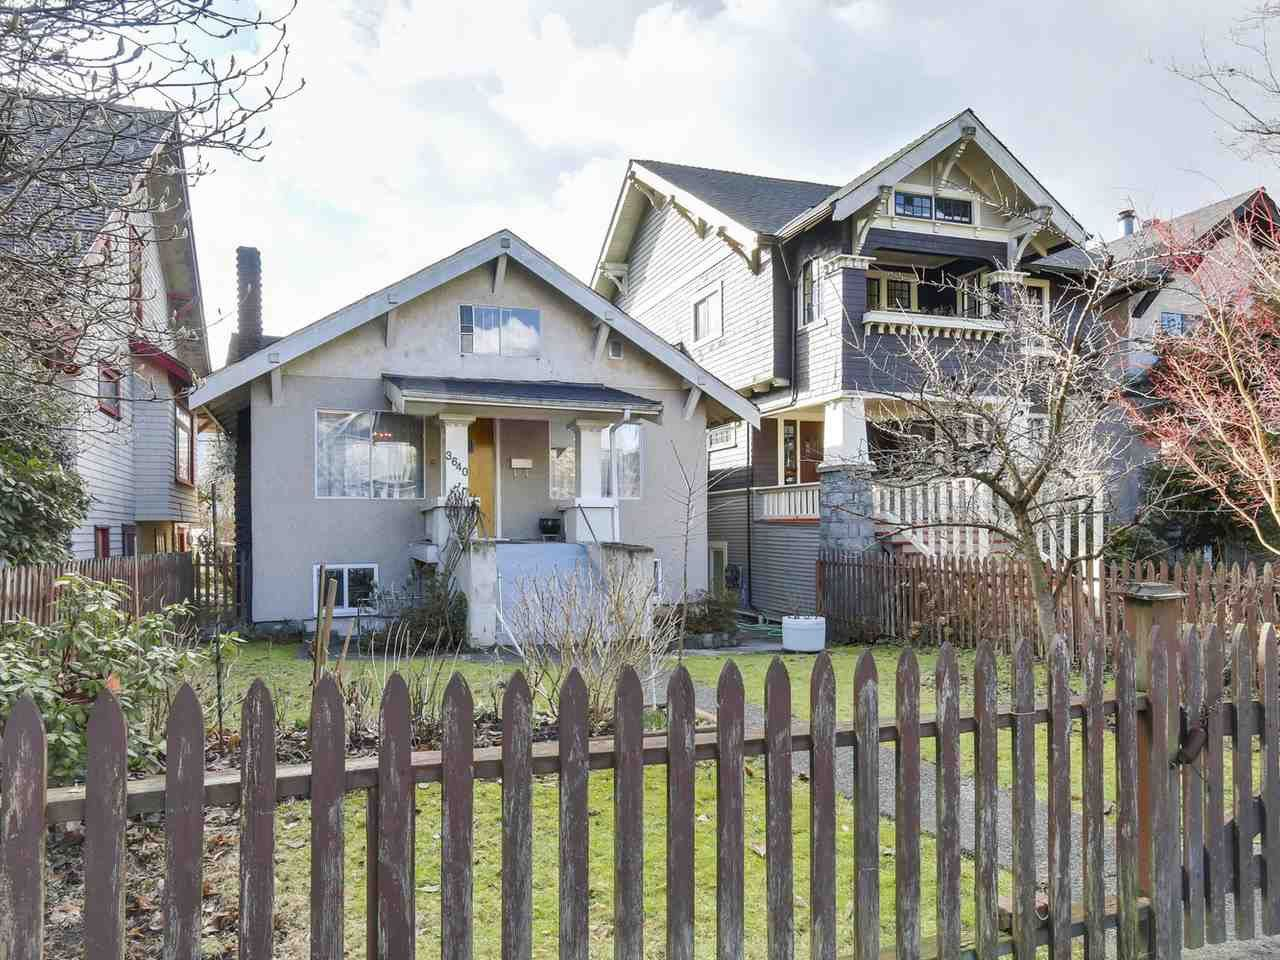 Main Photo: 3640 W 2nd Avenue in Vancouver: Kitsilano House for sale (Vancouver West)  : MLS®# R2141257